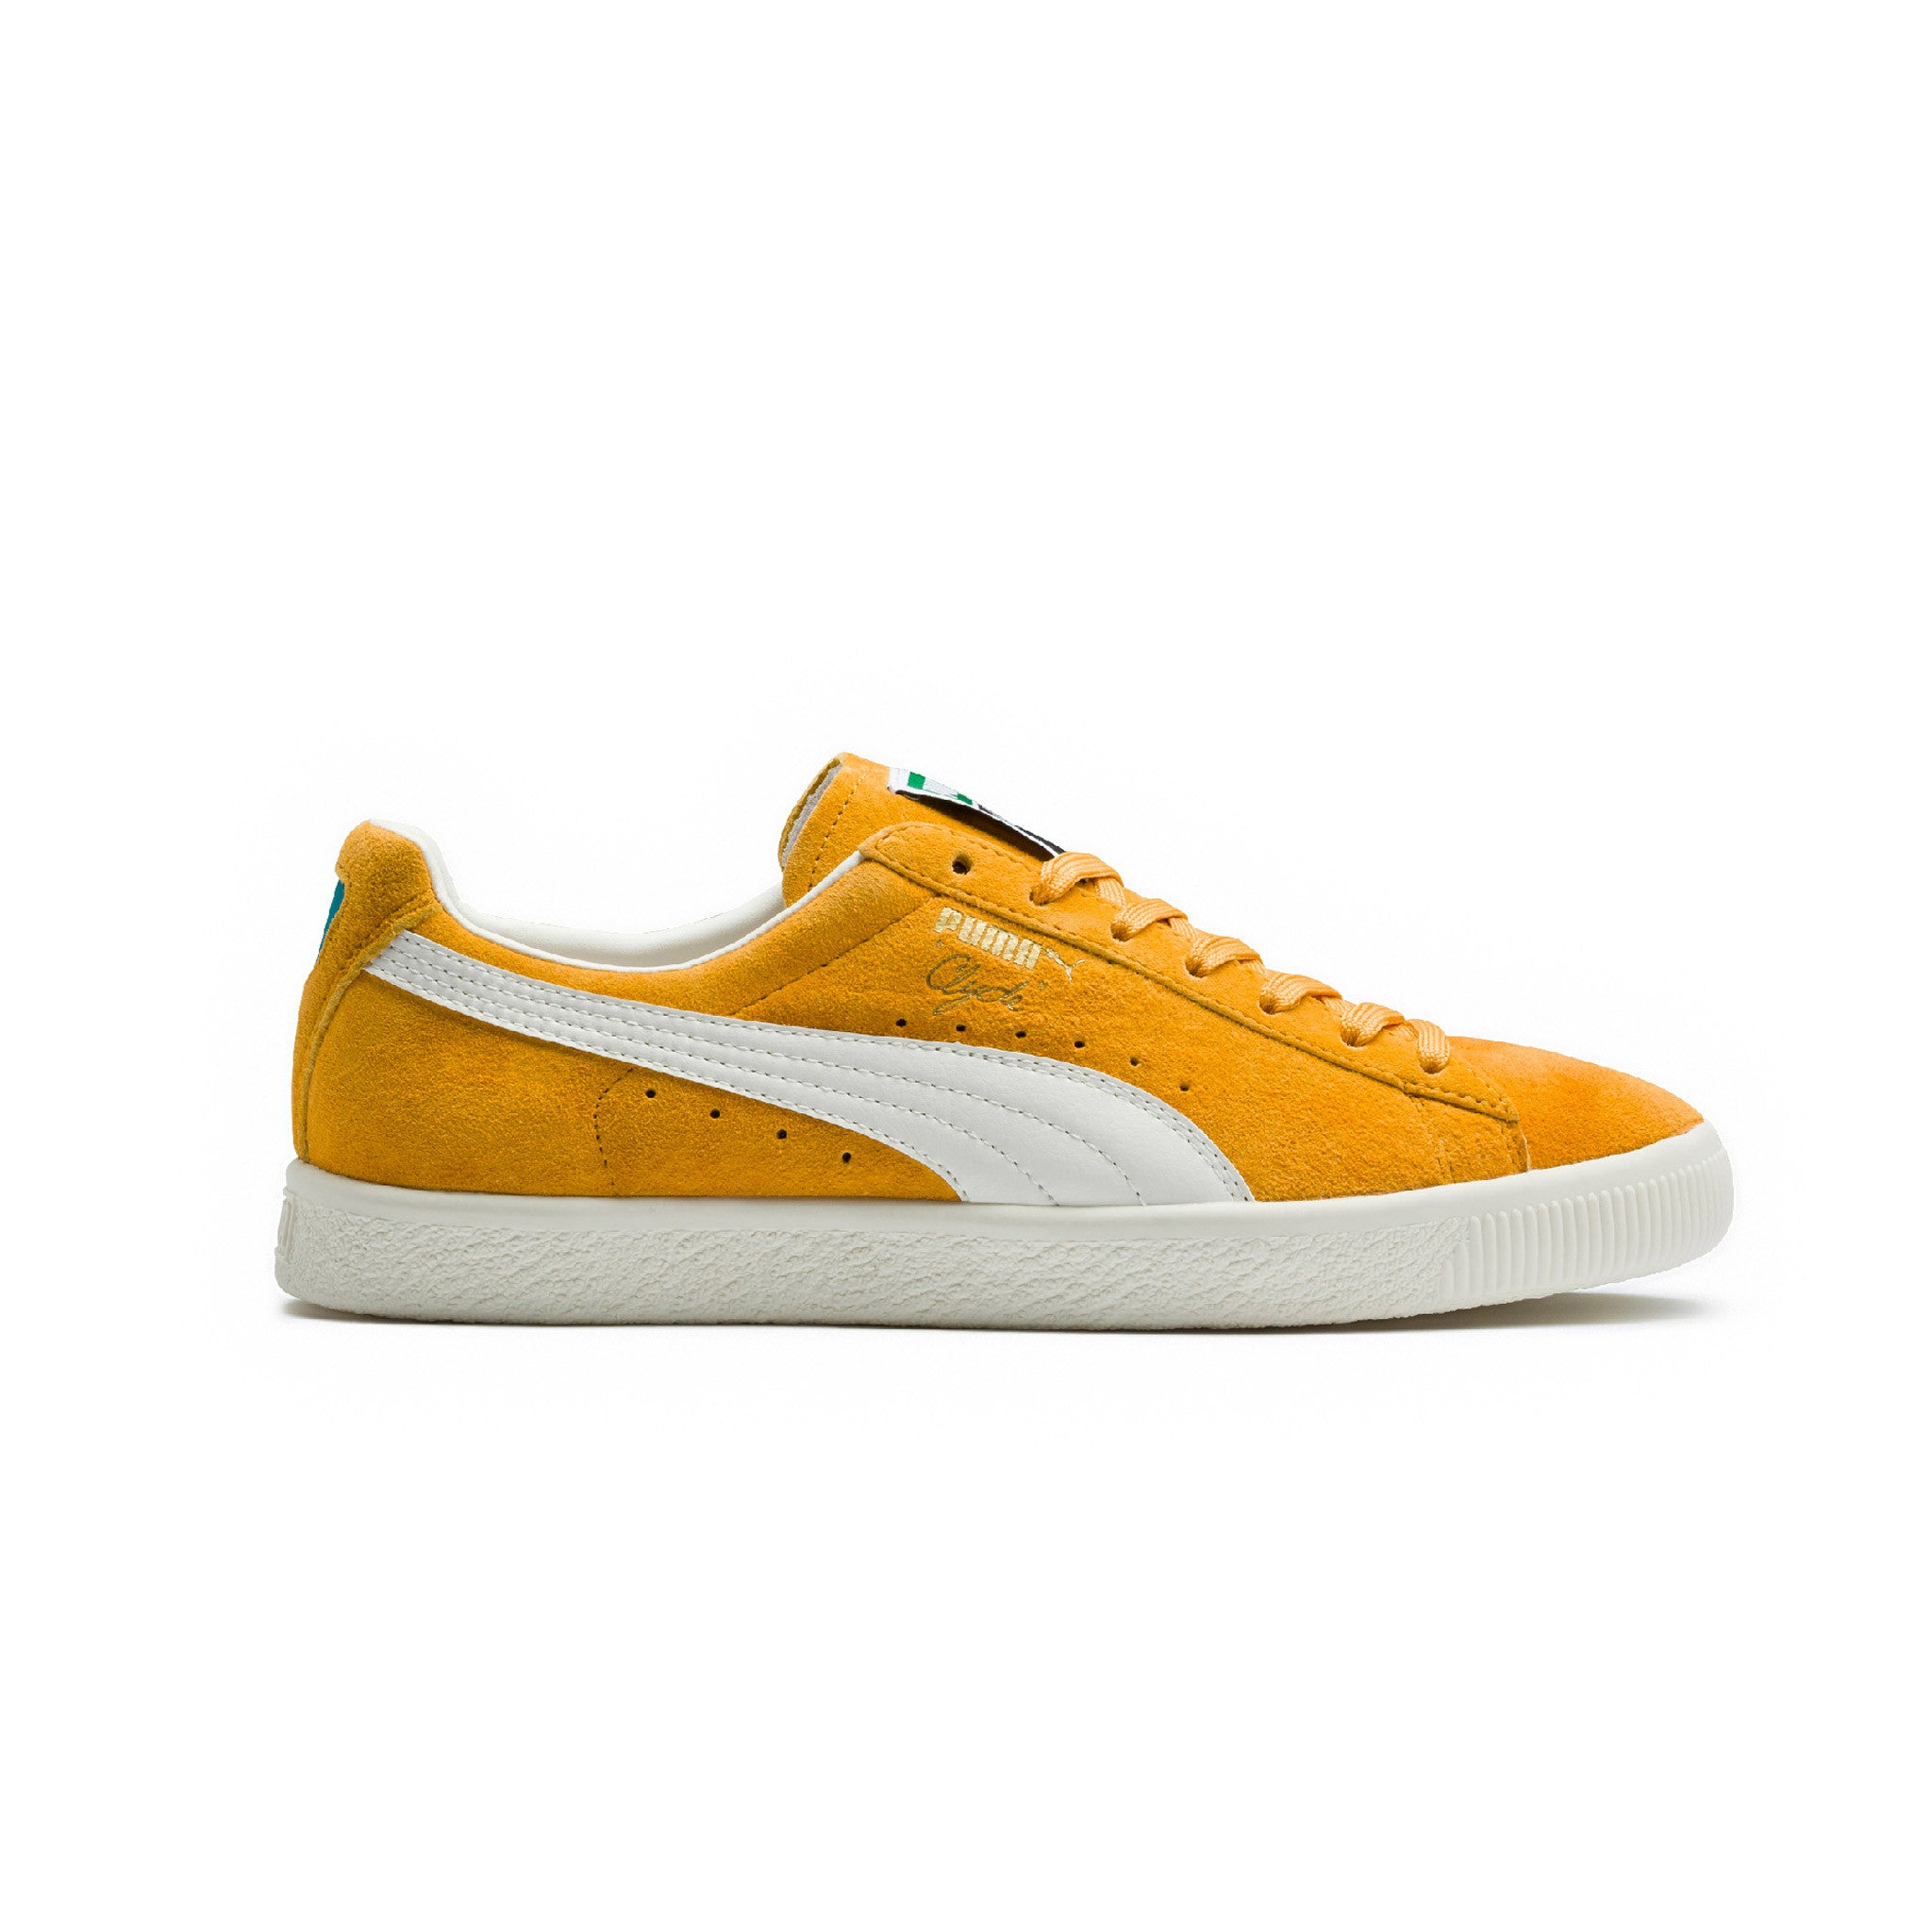 puma shoes yellow - sochim.com 5eb37e13d